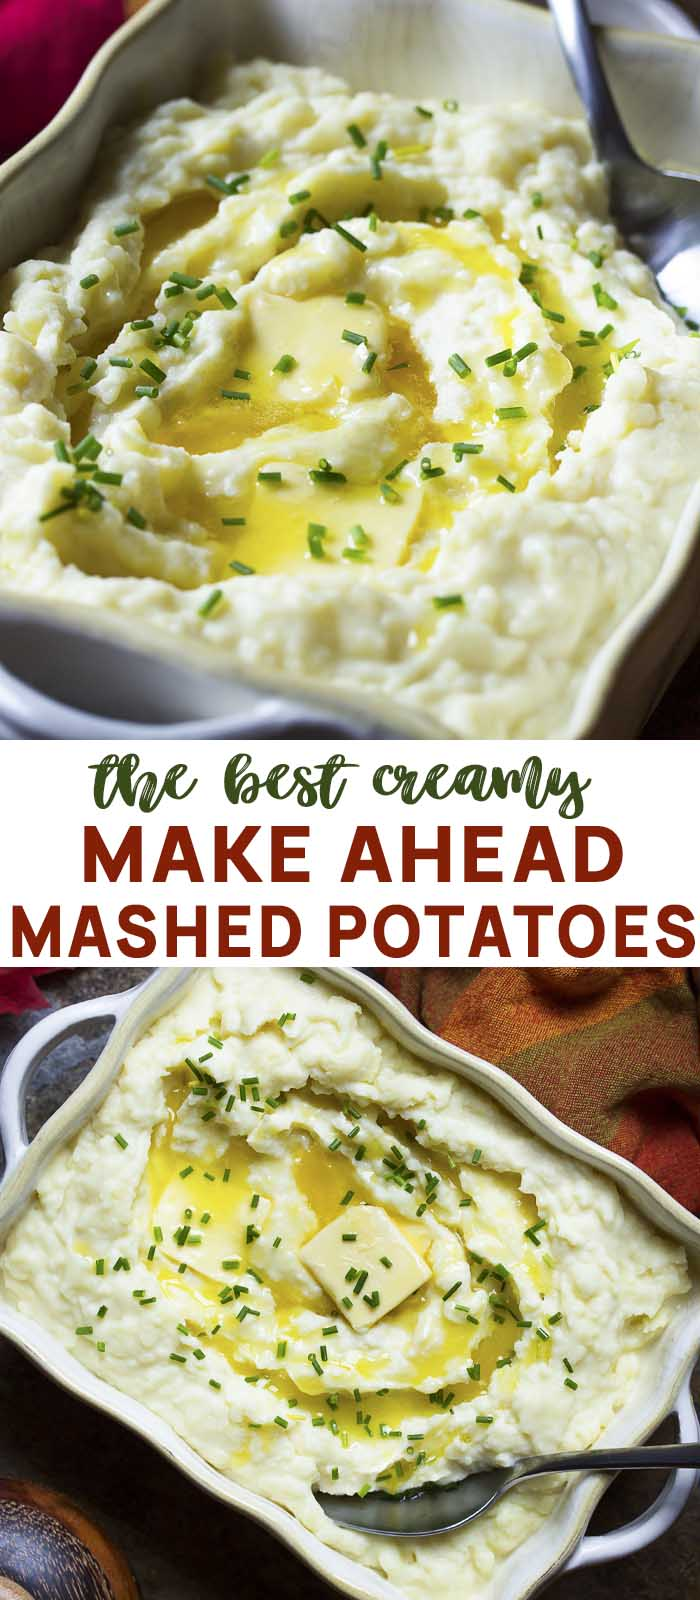 Two view of the recipe in a casserole dish with text overlay - Make Ahead Mashed Potatoes.